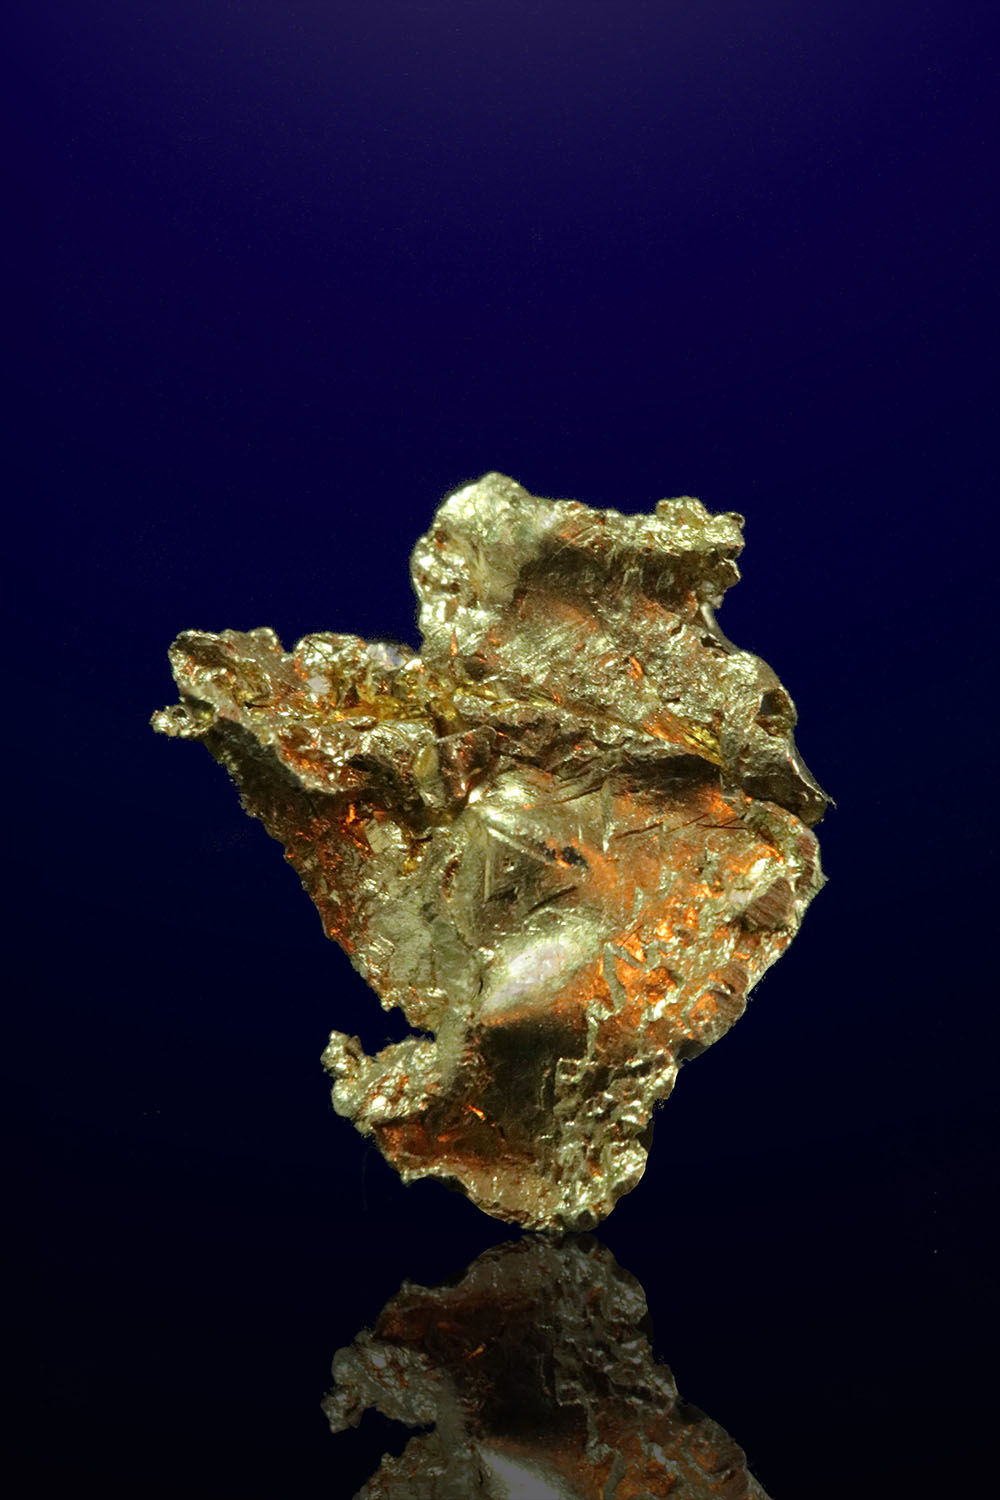 Leaf Gold with Crystals - Colorado Quartz Mine, California